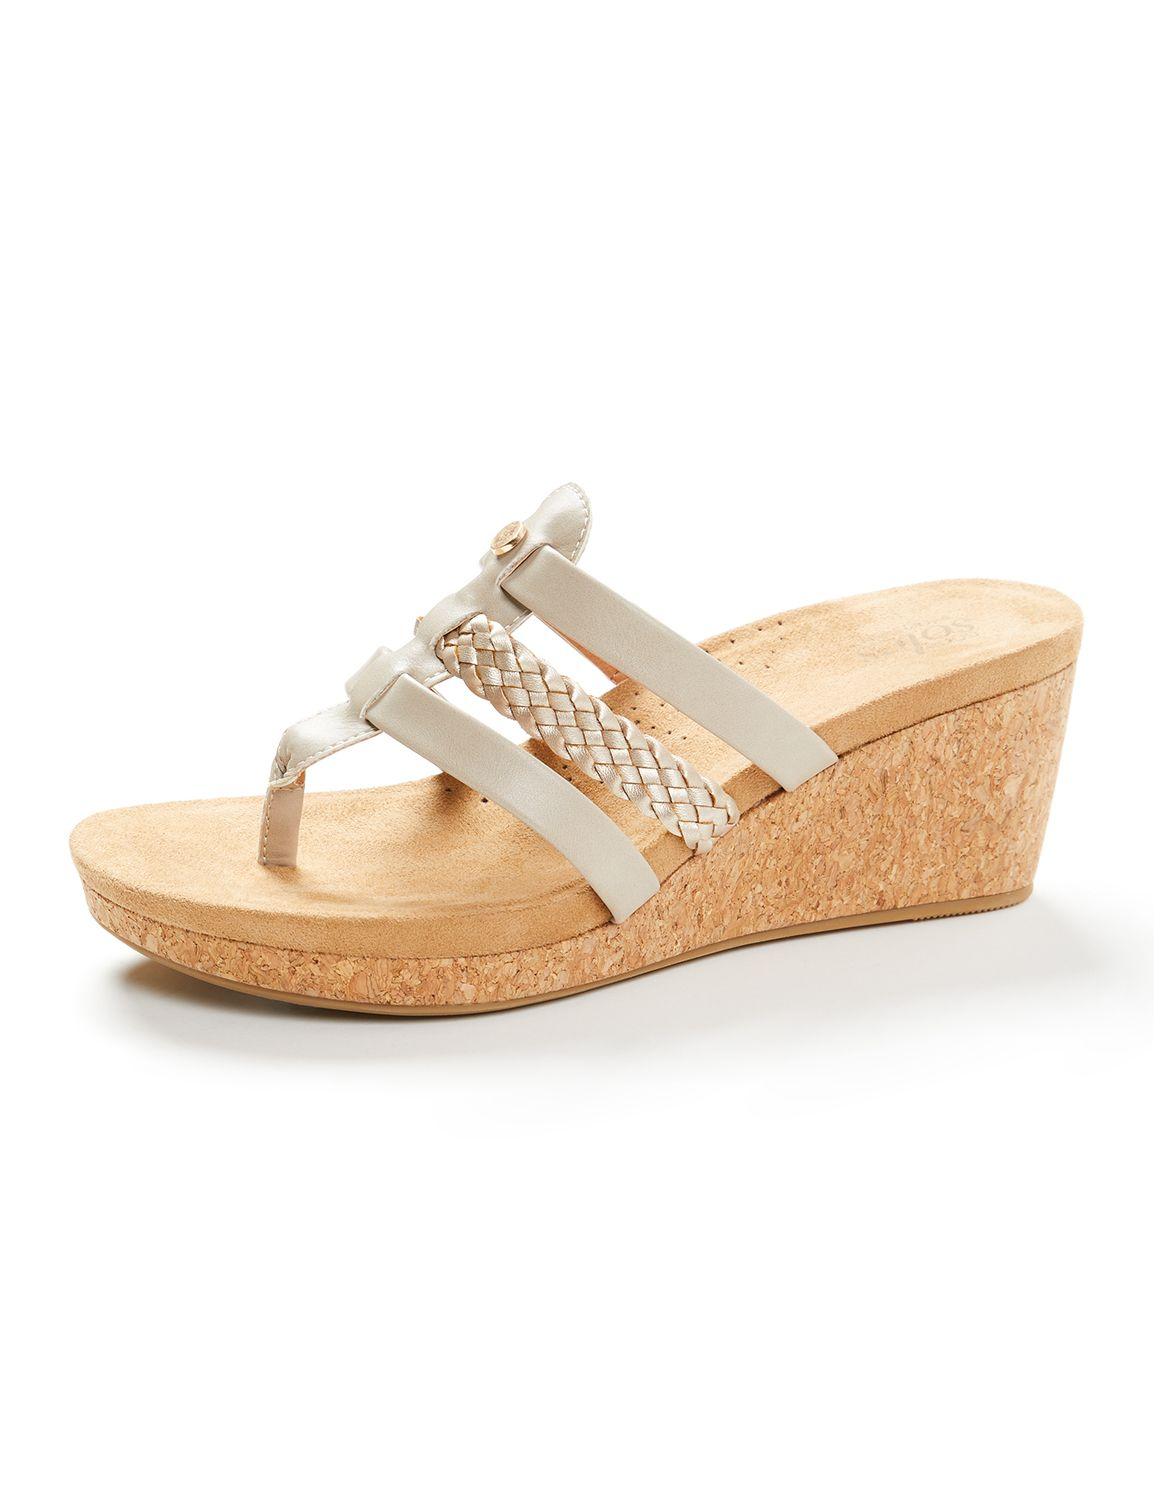 Good Soles Boardwalk Wedge Sandal Cork Wedge w/ Three Straps Wedge WL MP-300097413